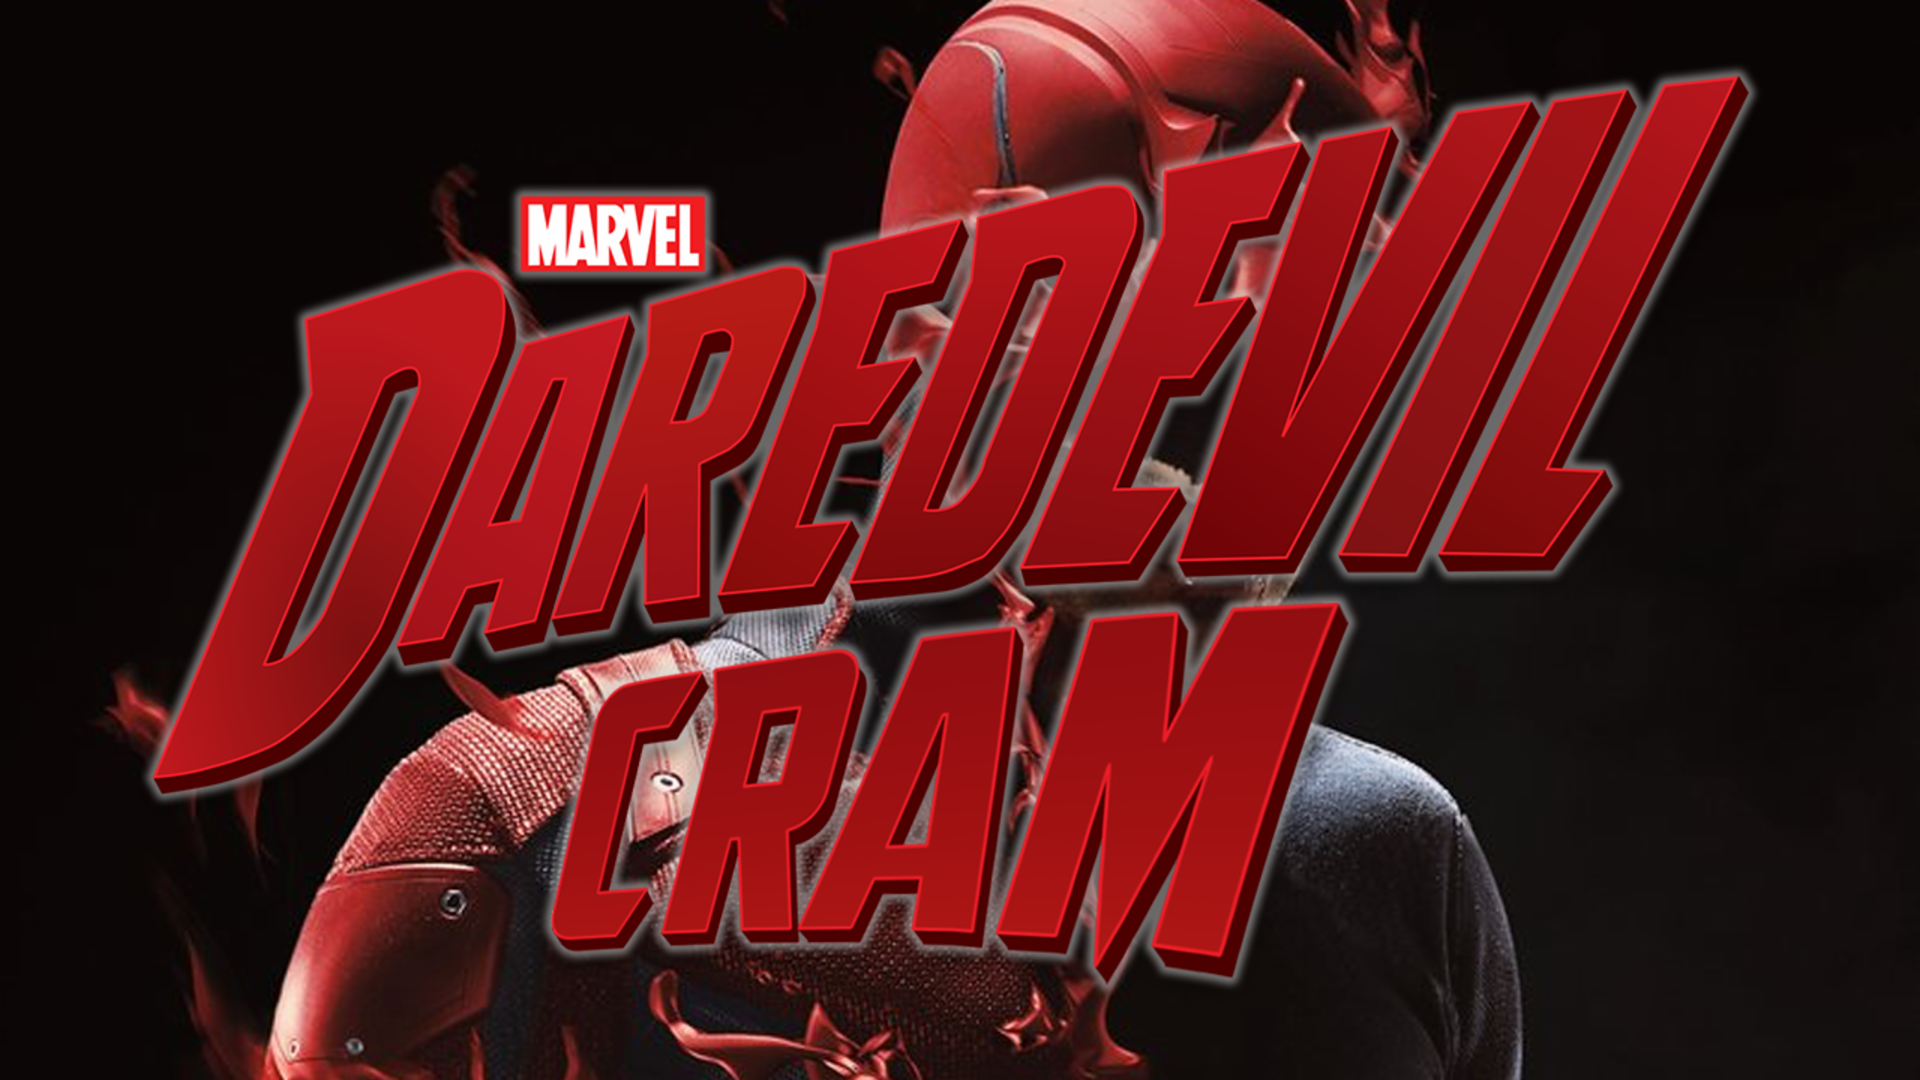 Daredevil: Season 3 CRAM! screen capture